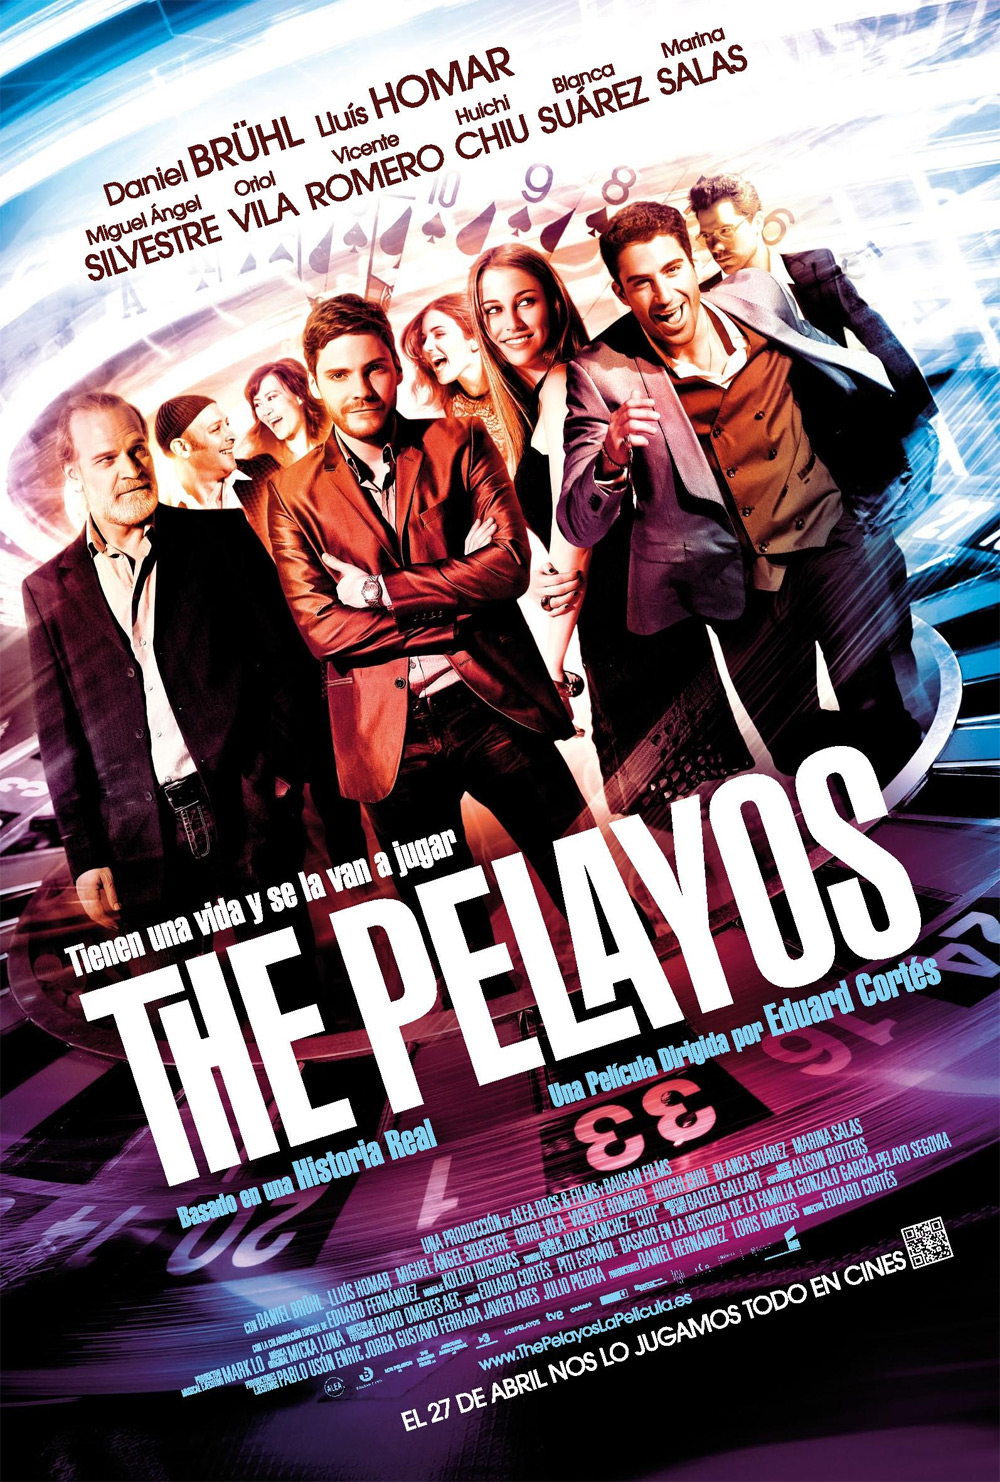 cartel-the-pelayos